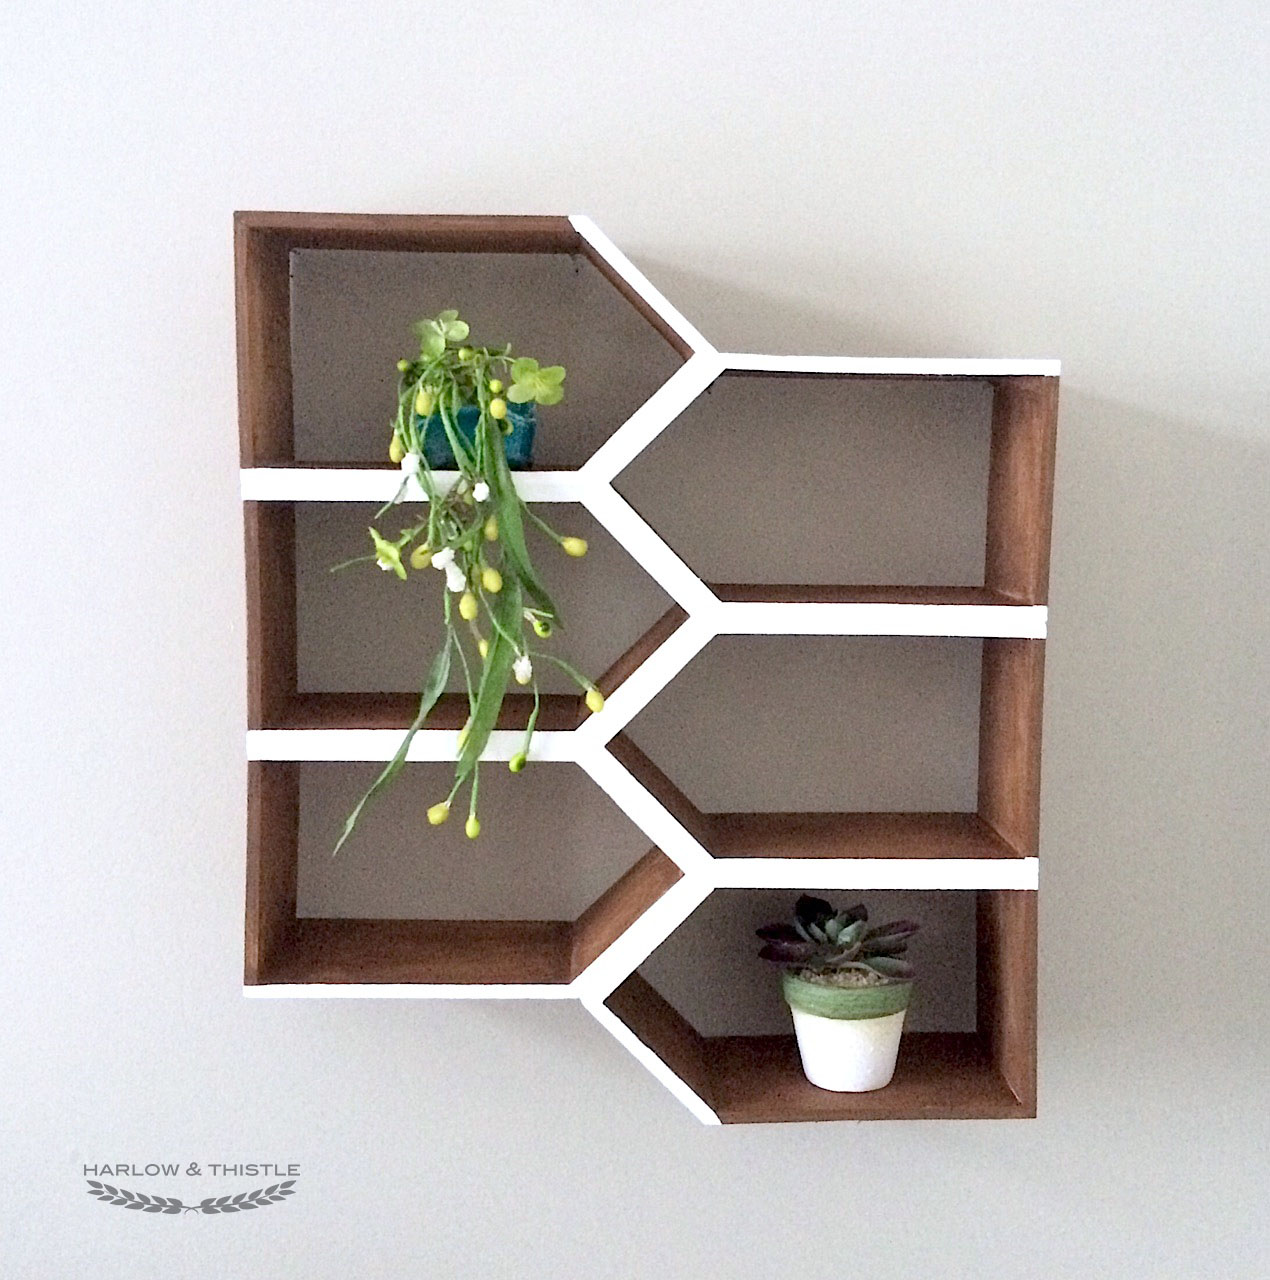 Diy geometric wall shelf harlow thistle home design diy geometric wall shelf minwaxcanada ids17 harlow thistle amipublicfo Gallery